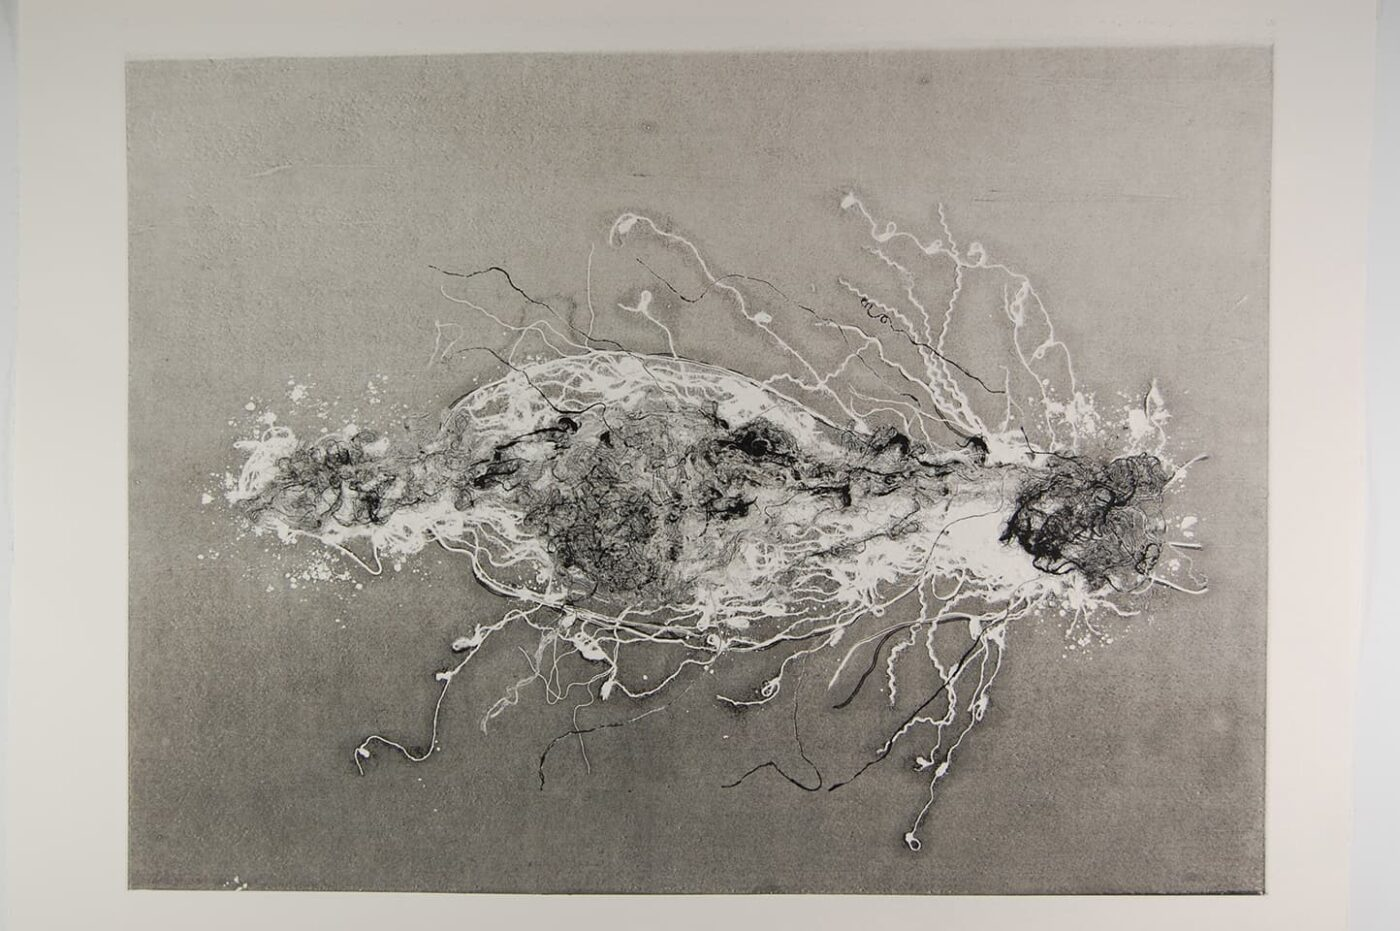 <strong>Out of Body 2.2</strong>, Susan Aldworth, monoprint, 56 x 76 cms, 2009.